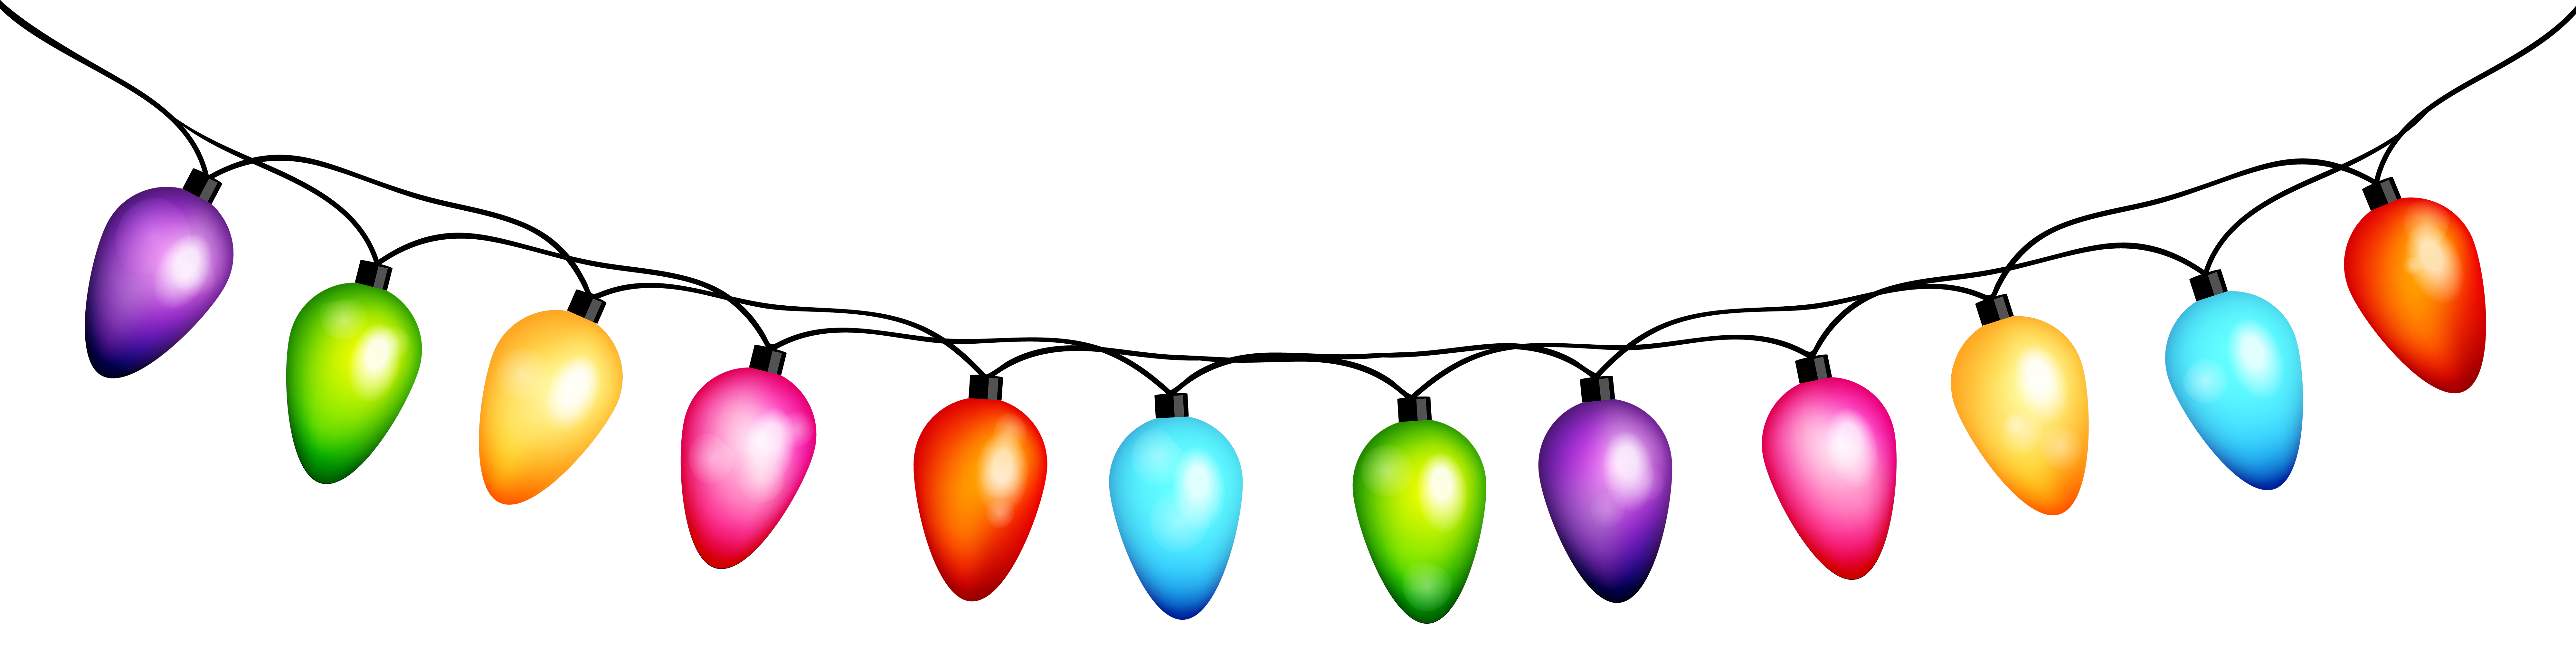 christmas bulb clipart at getdrawings com free for personal use